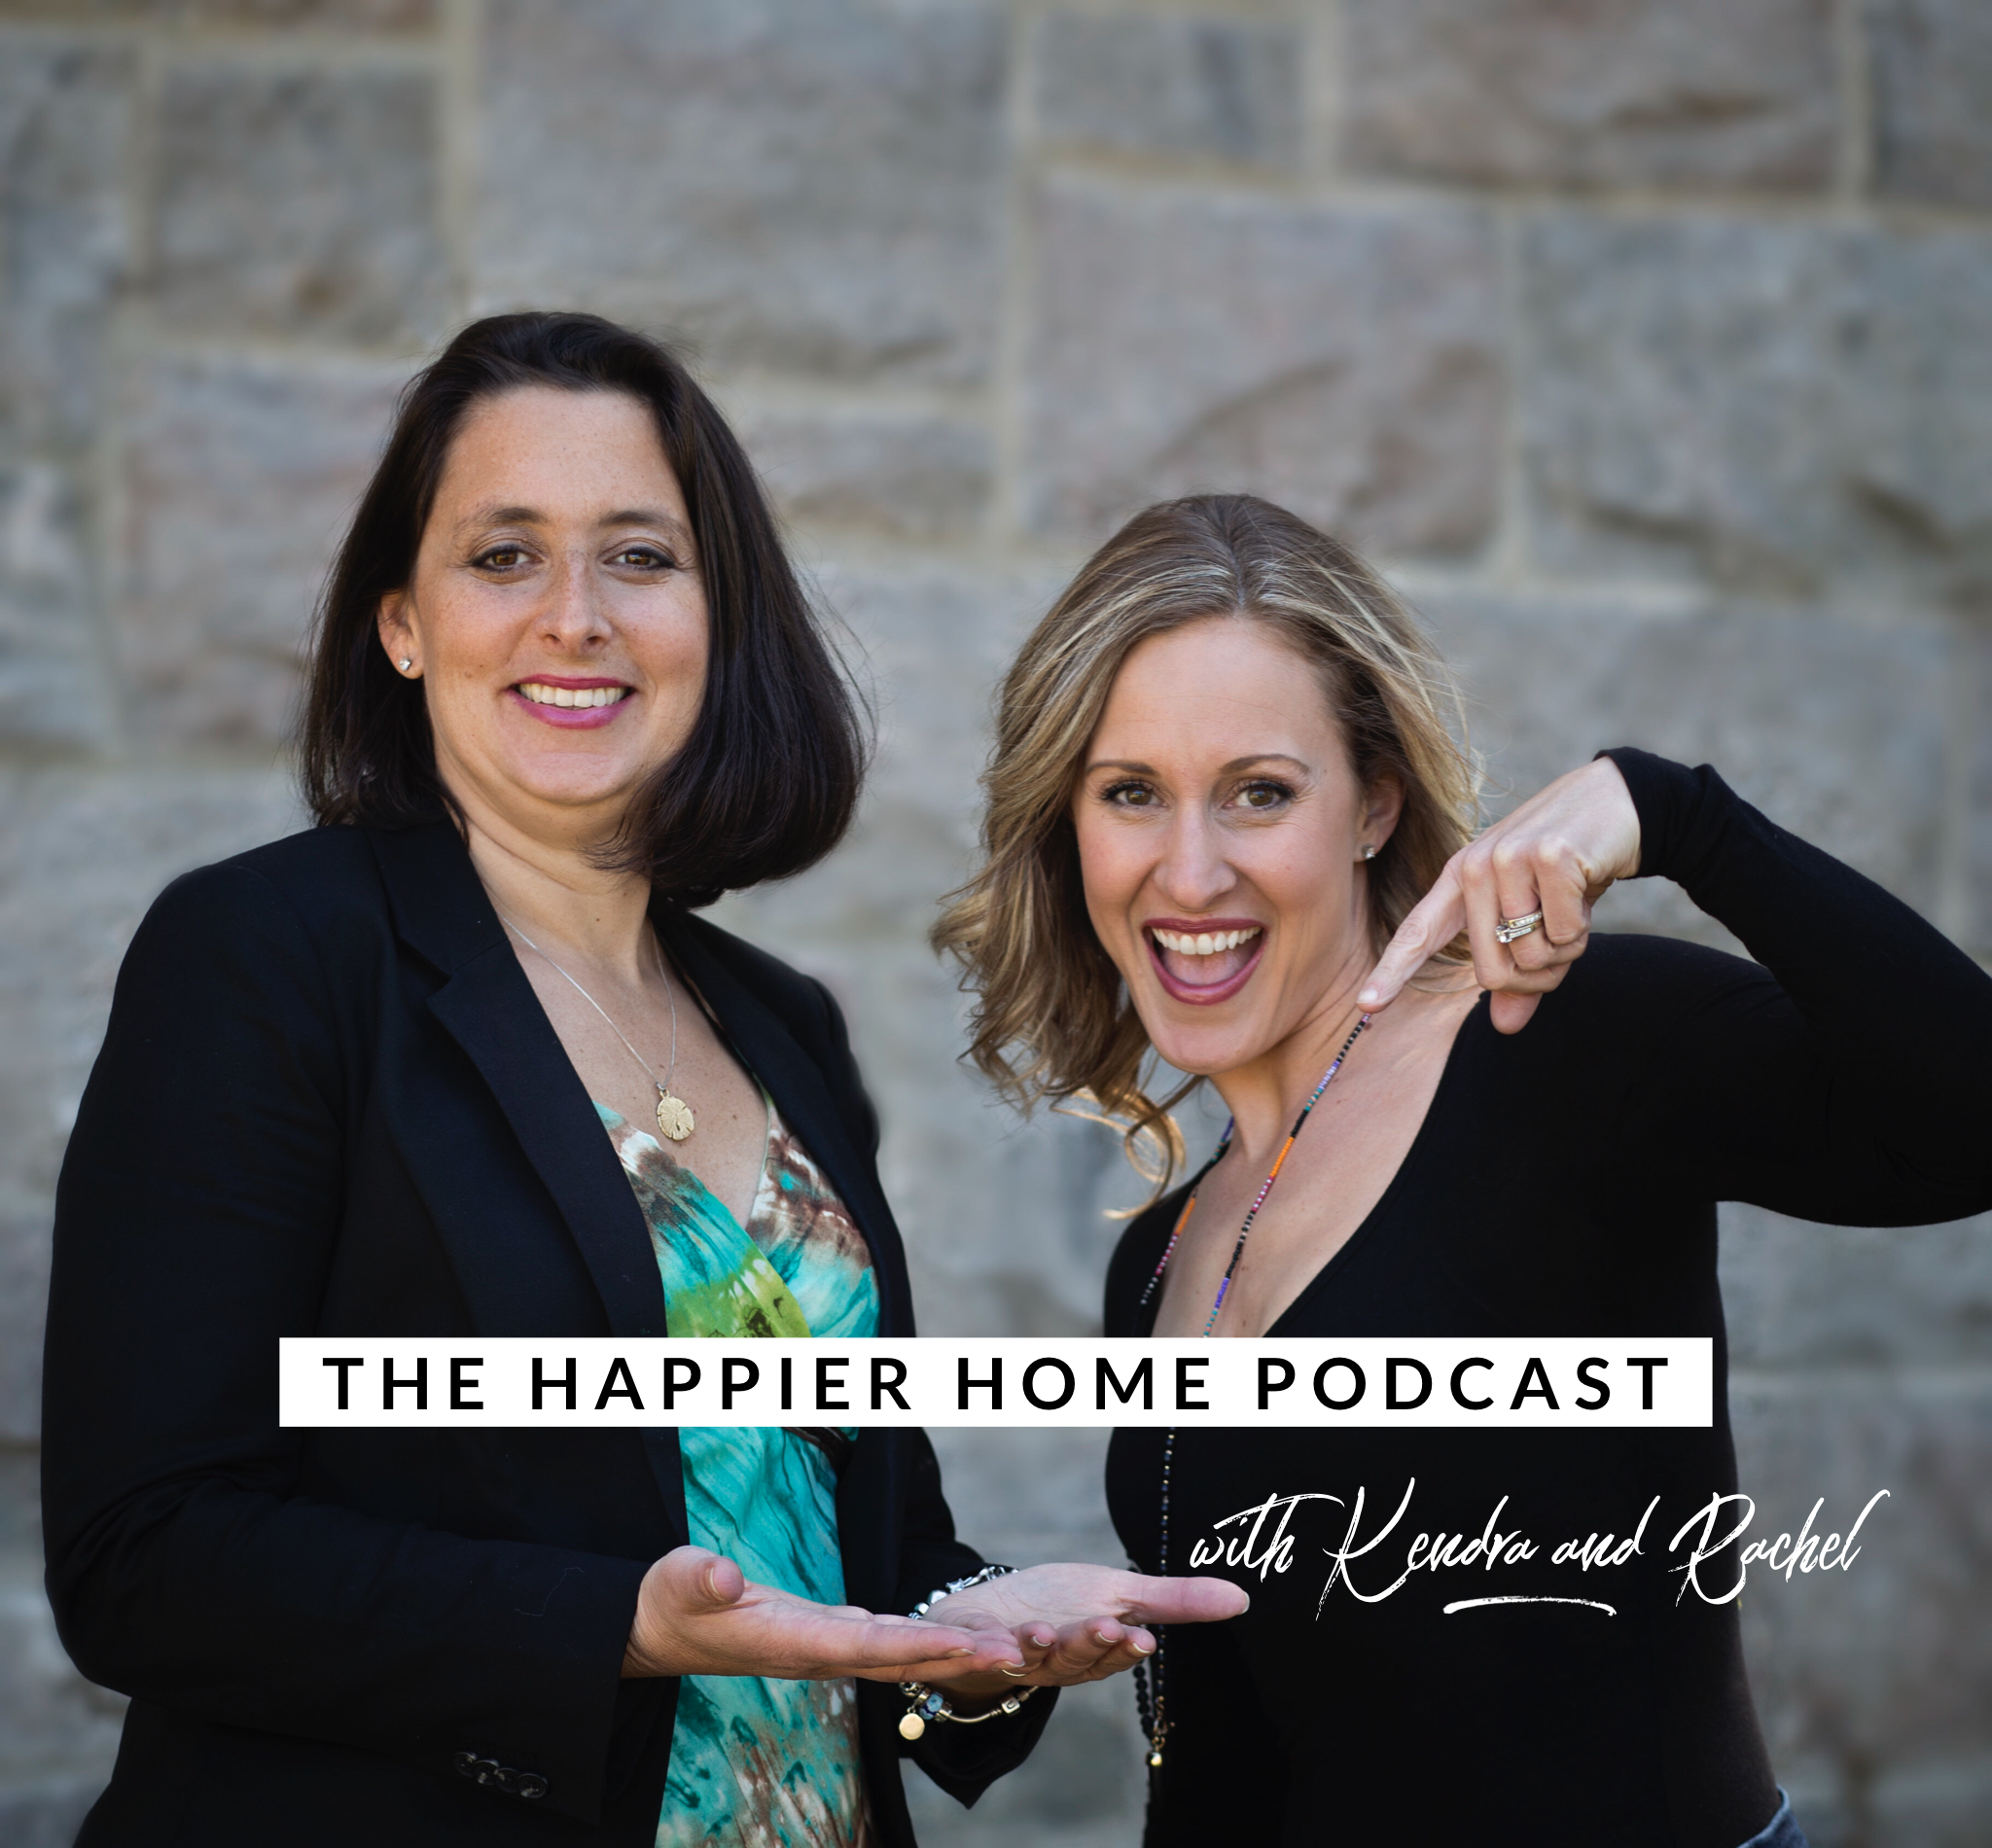 The Happier Home Podcast